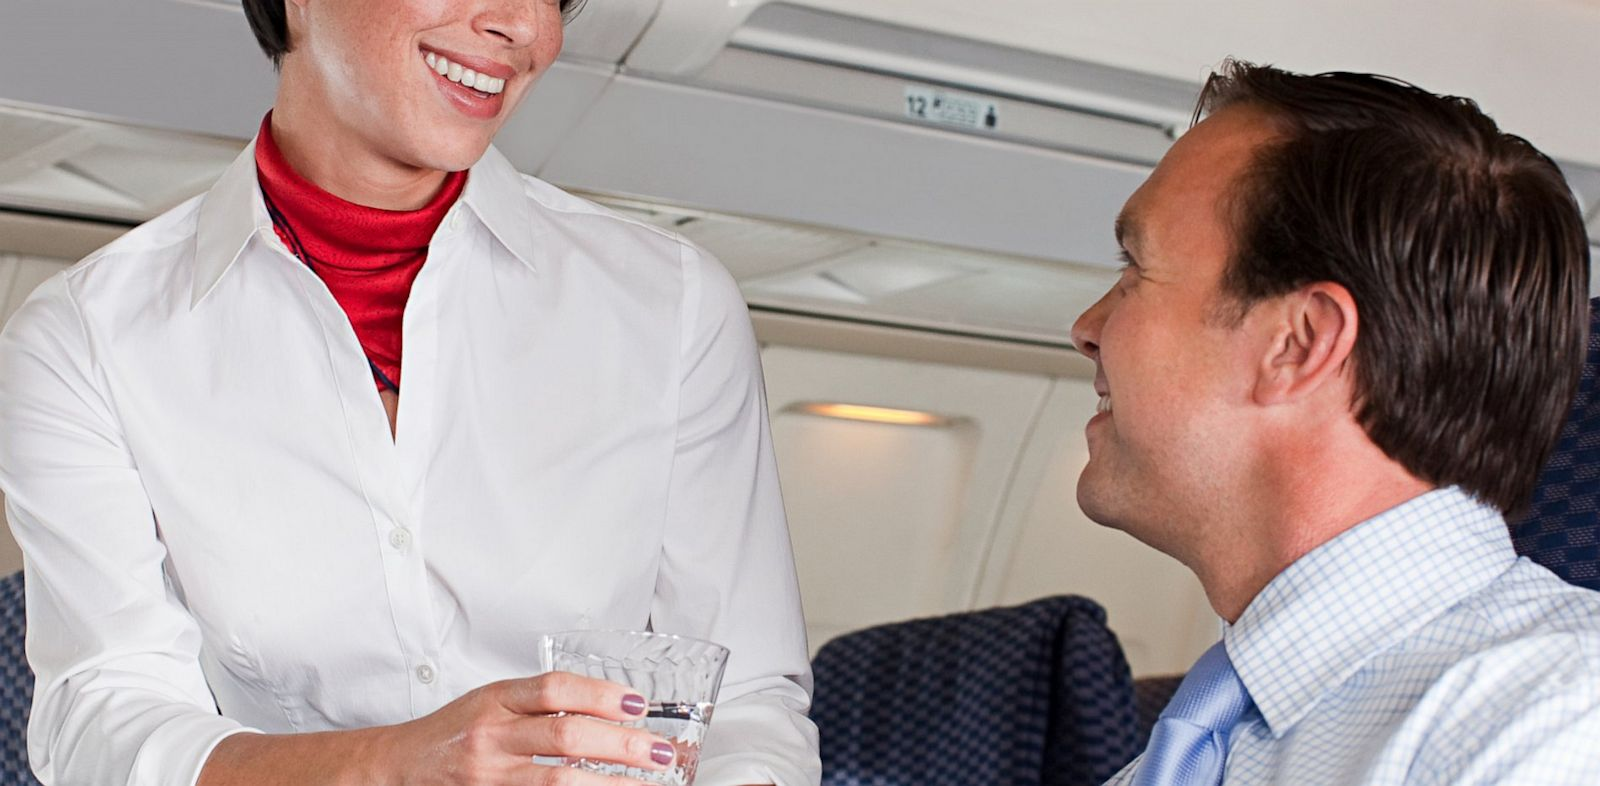 PHOTO: Tipping flight attendants isnt usually expected, but is it taboo?